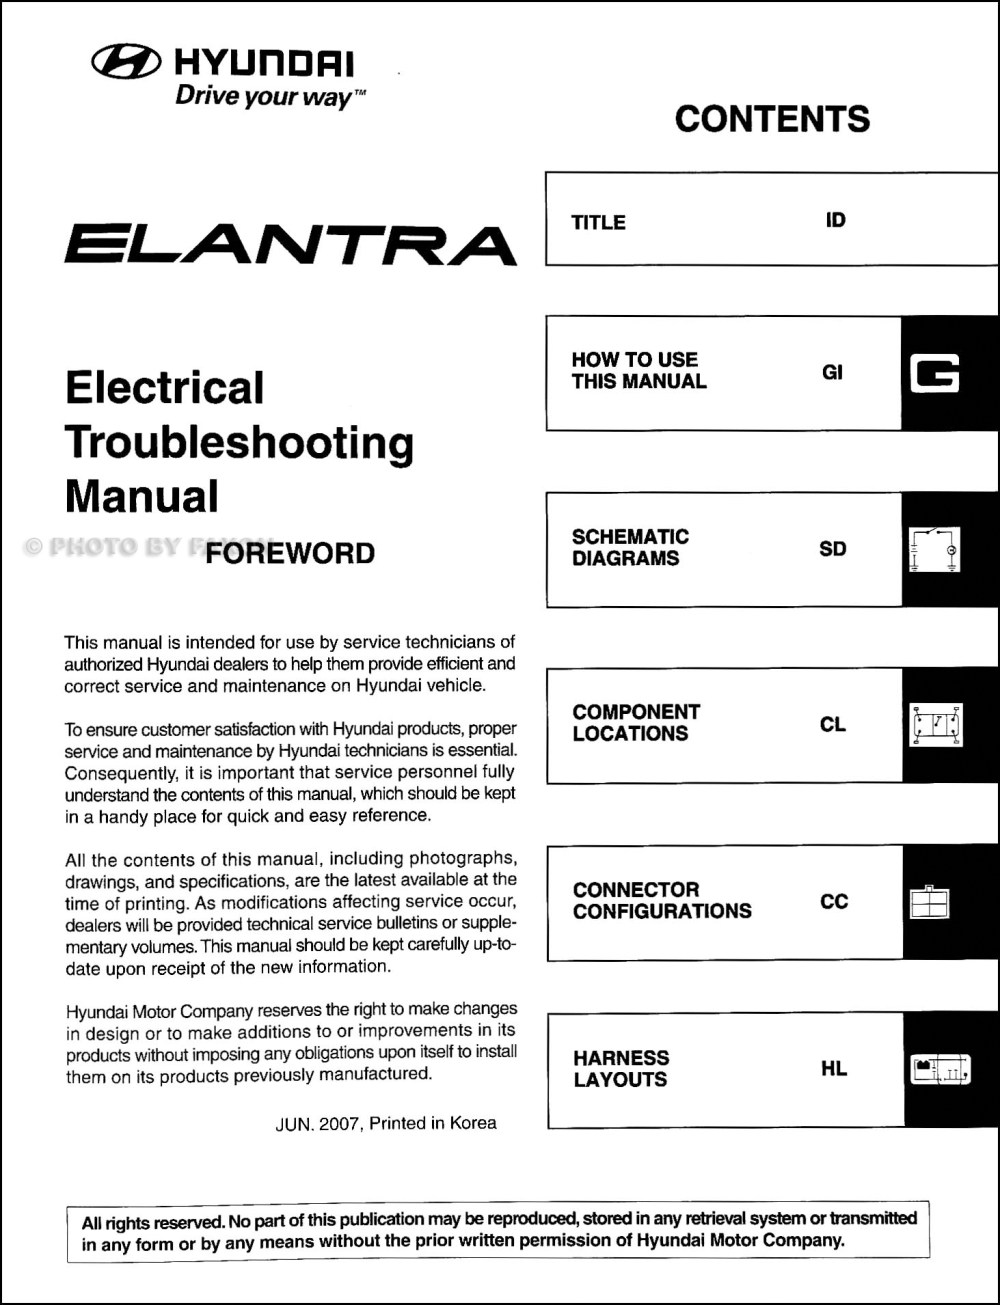 medium resolution of 2008 hyundai elantra electrical troubleshooting manual